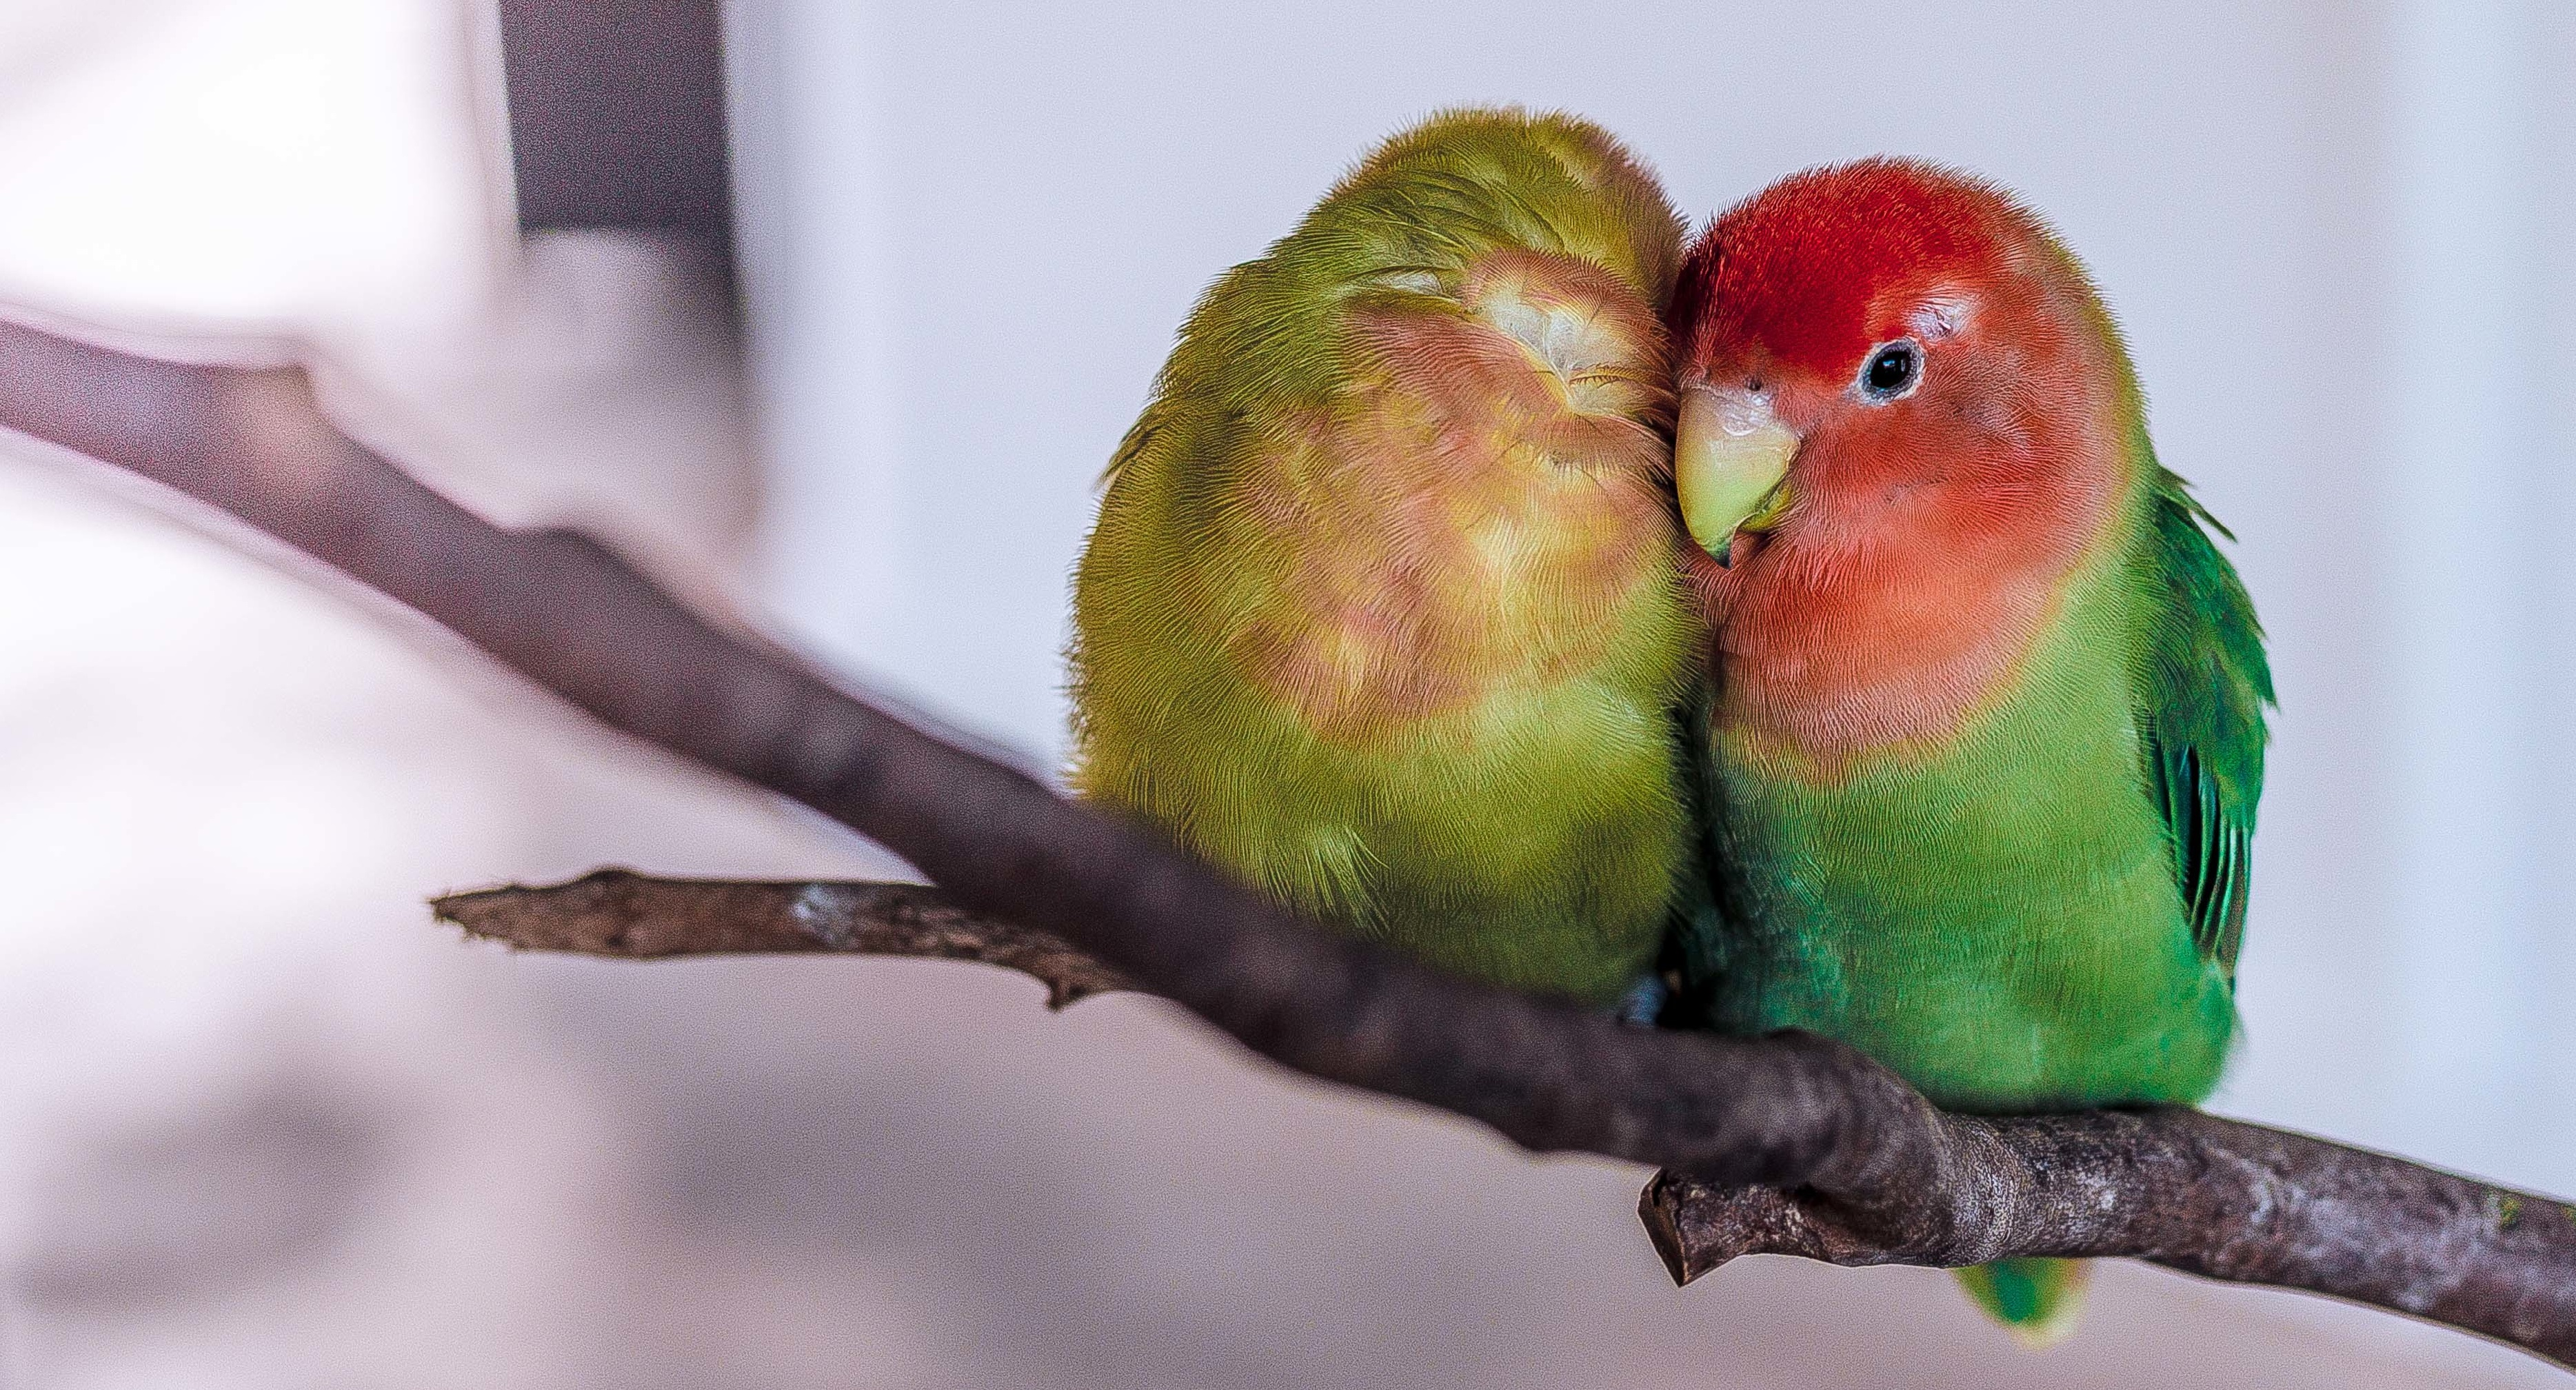 Photo of two birds on a branch, snuggling each other as if consenting